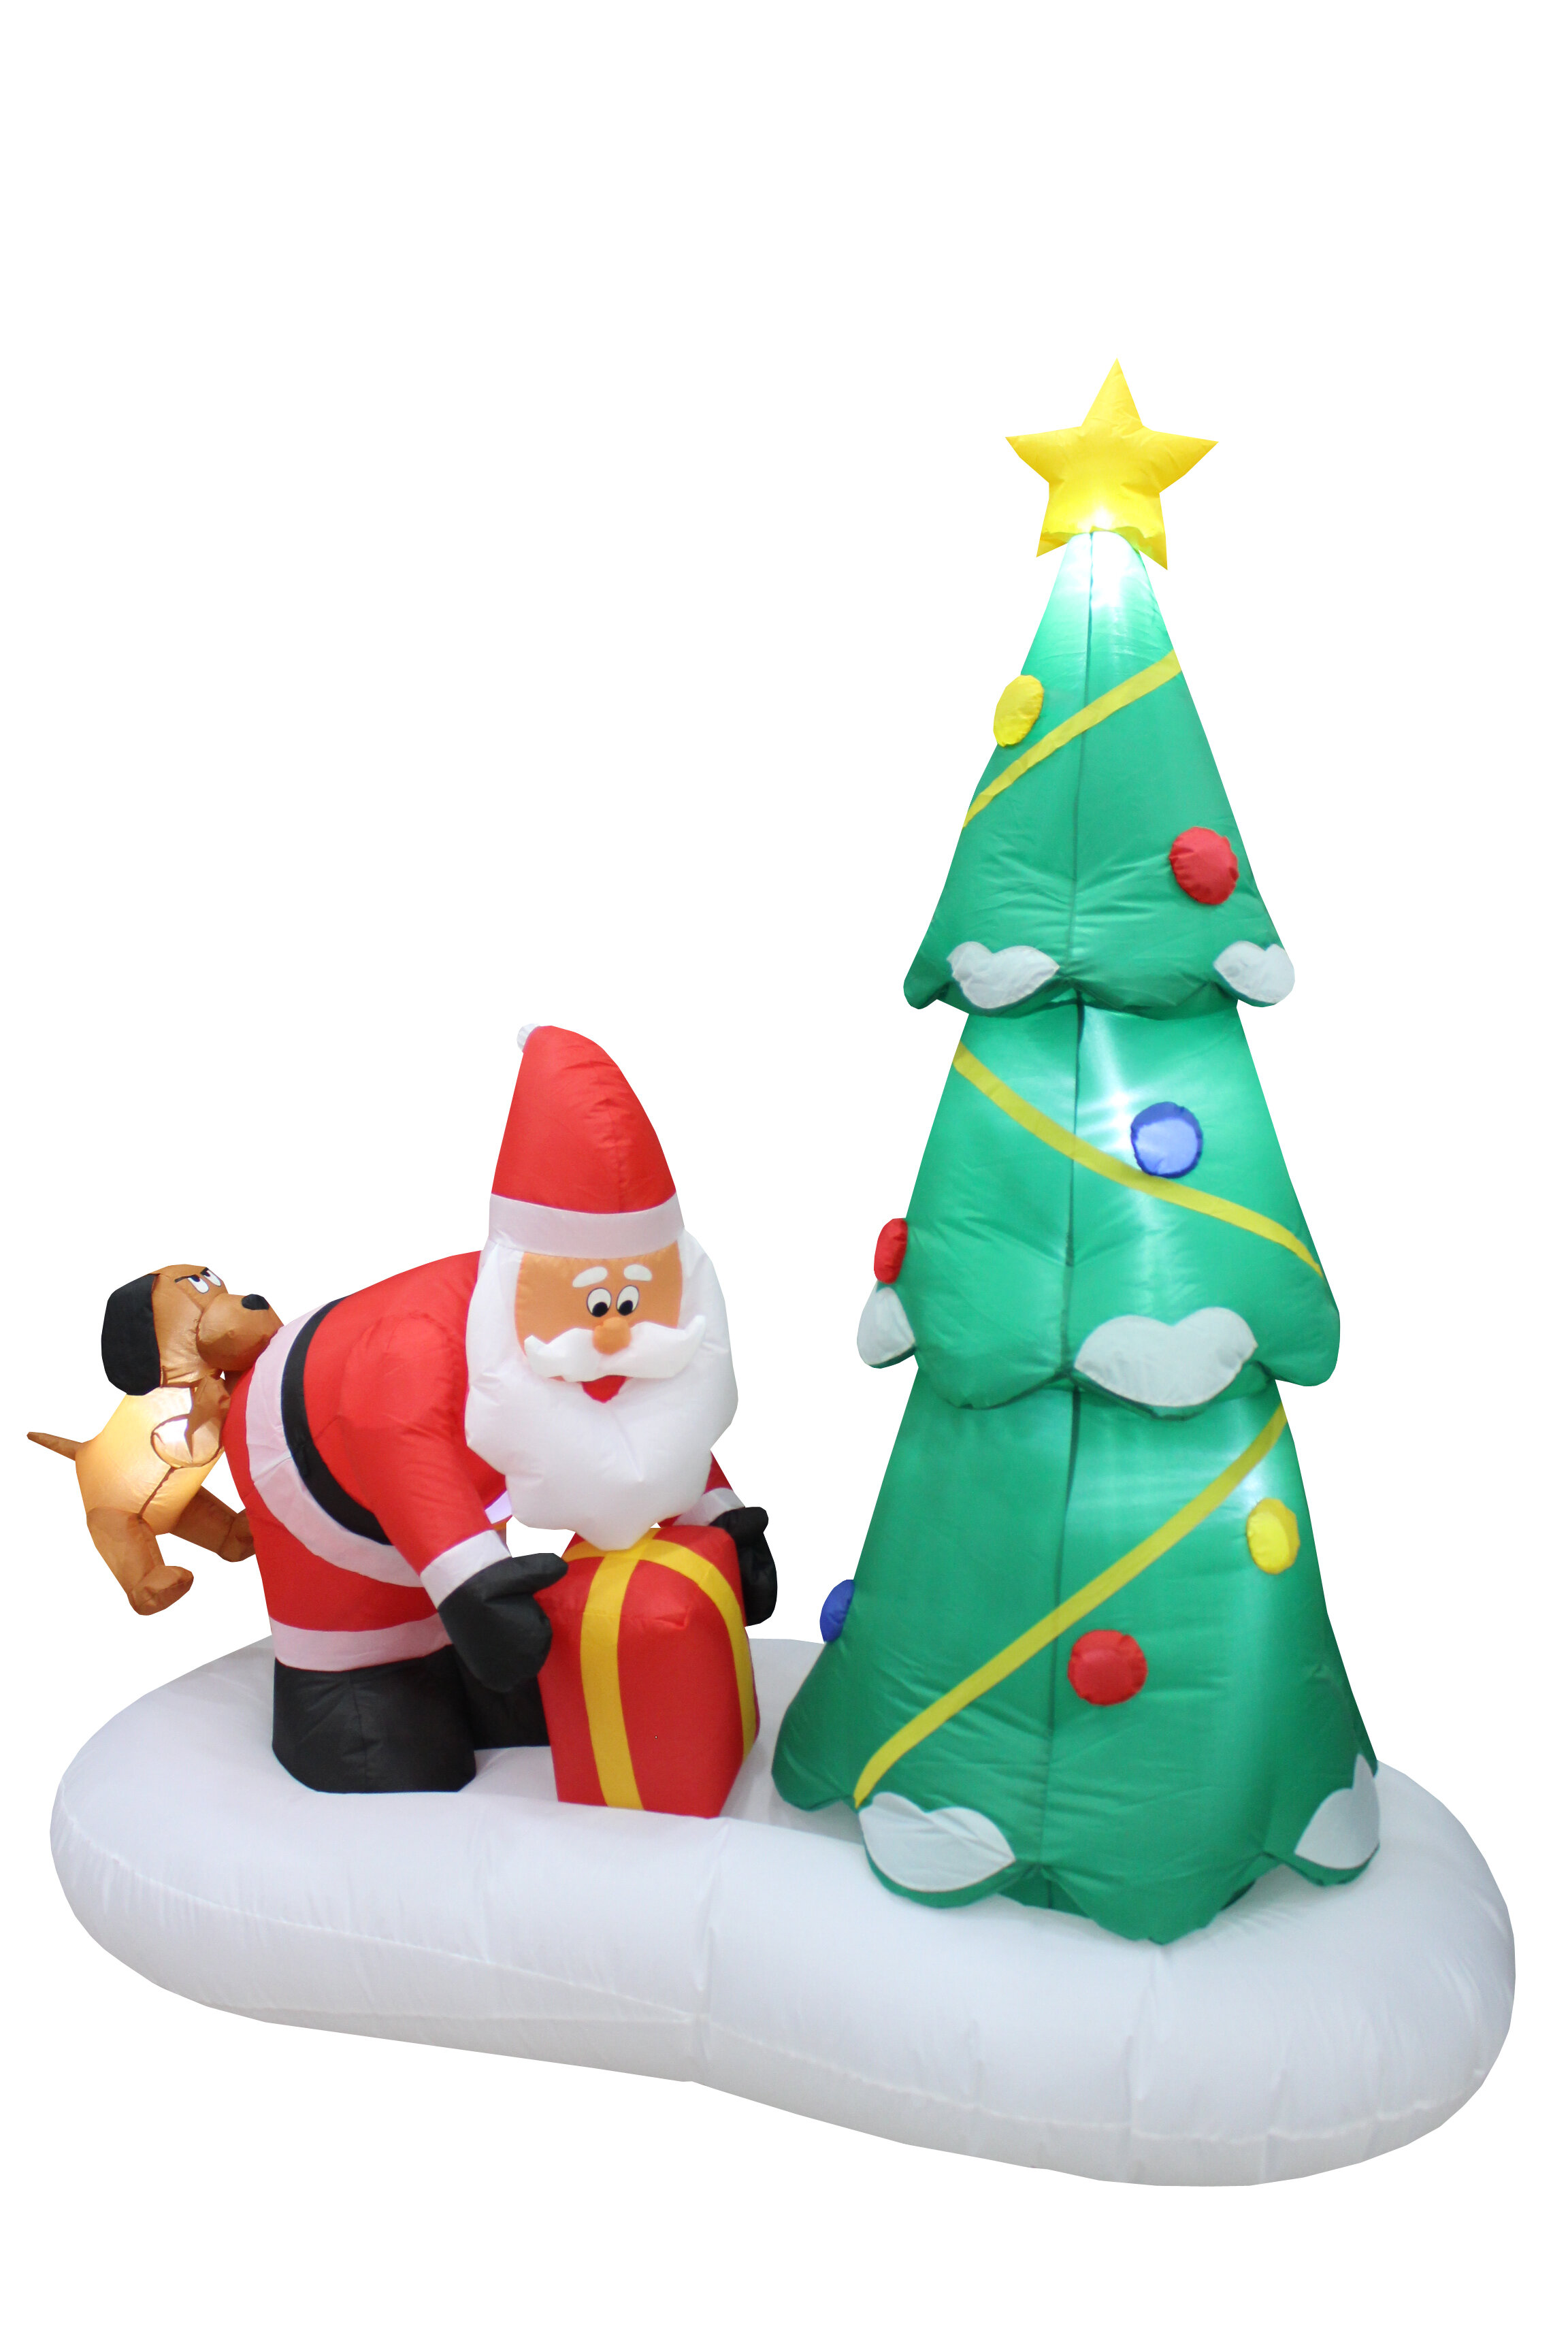 The Holiday Aisle Tree with Santa Claus and Dog Christmas Inflatable ...